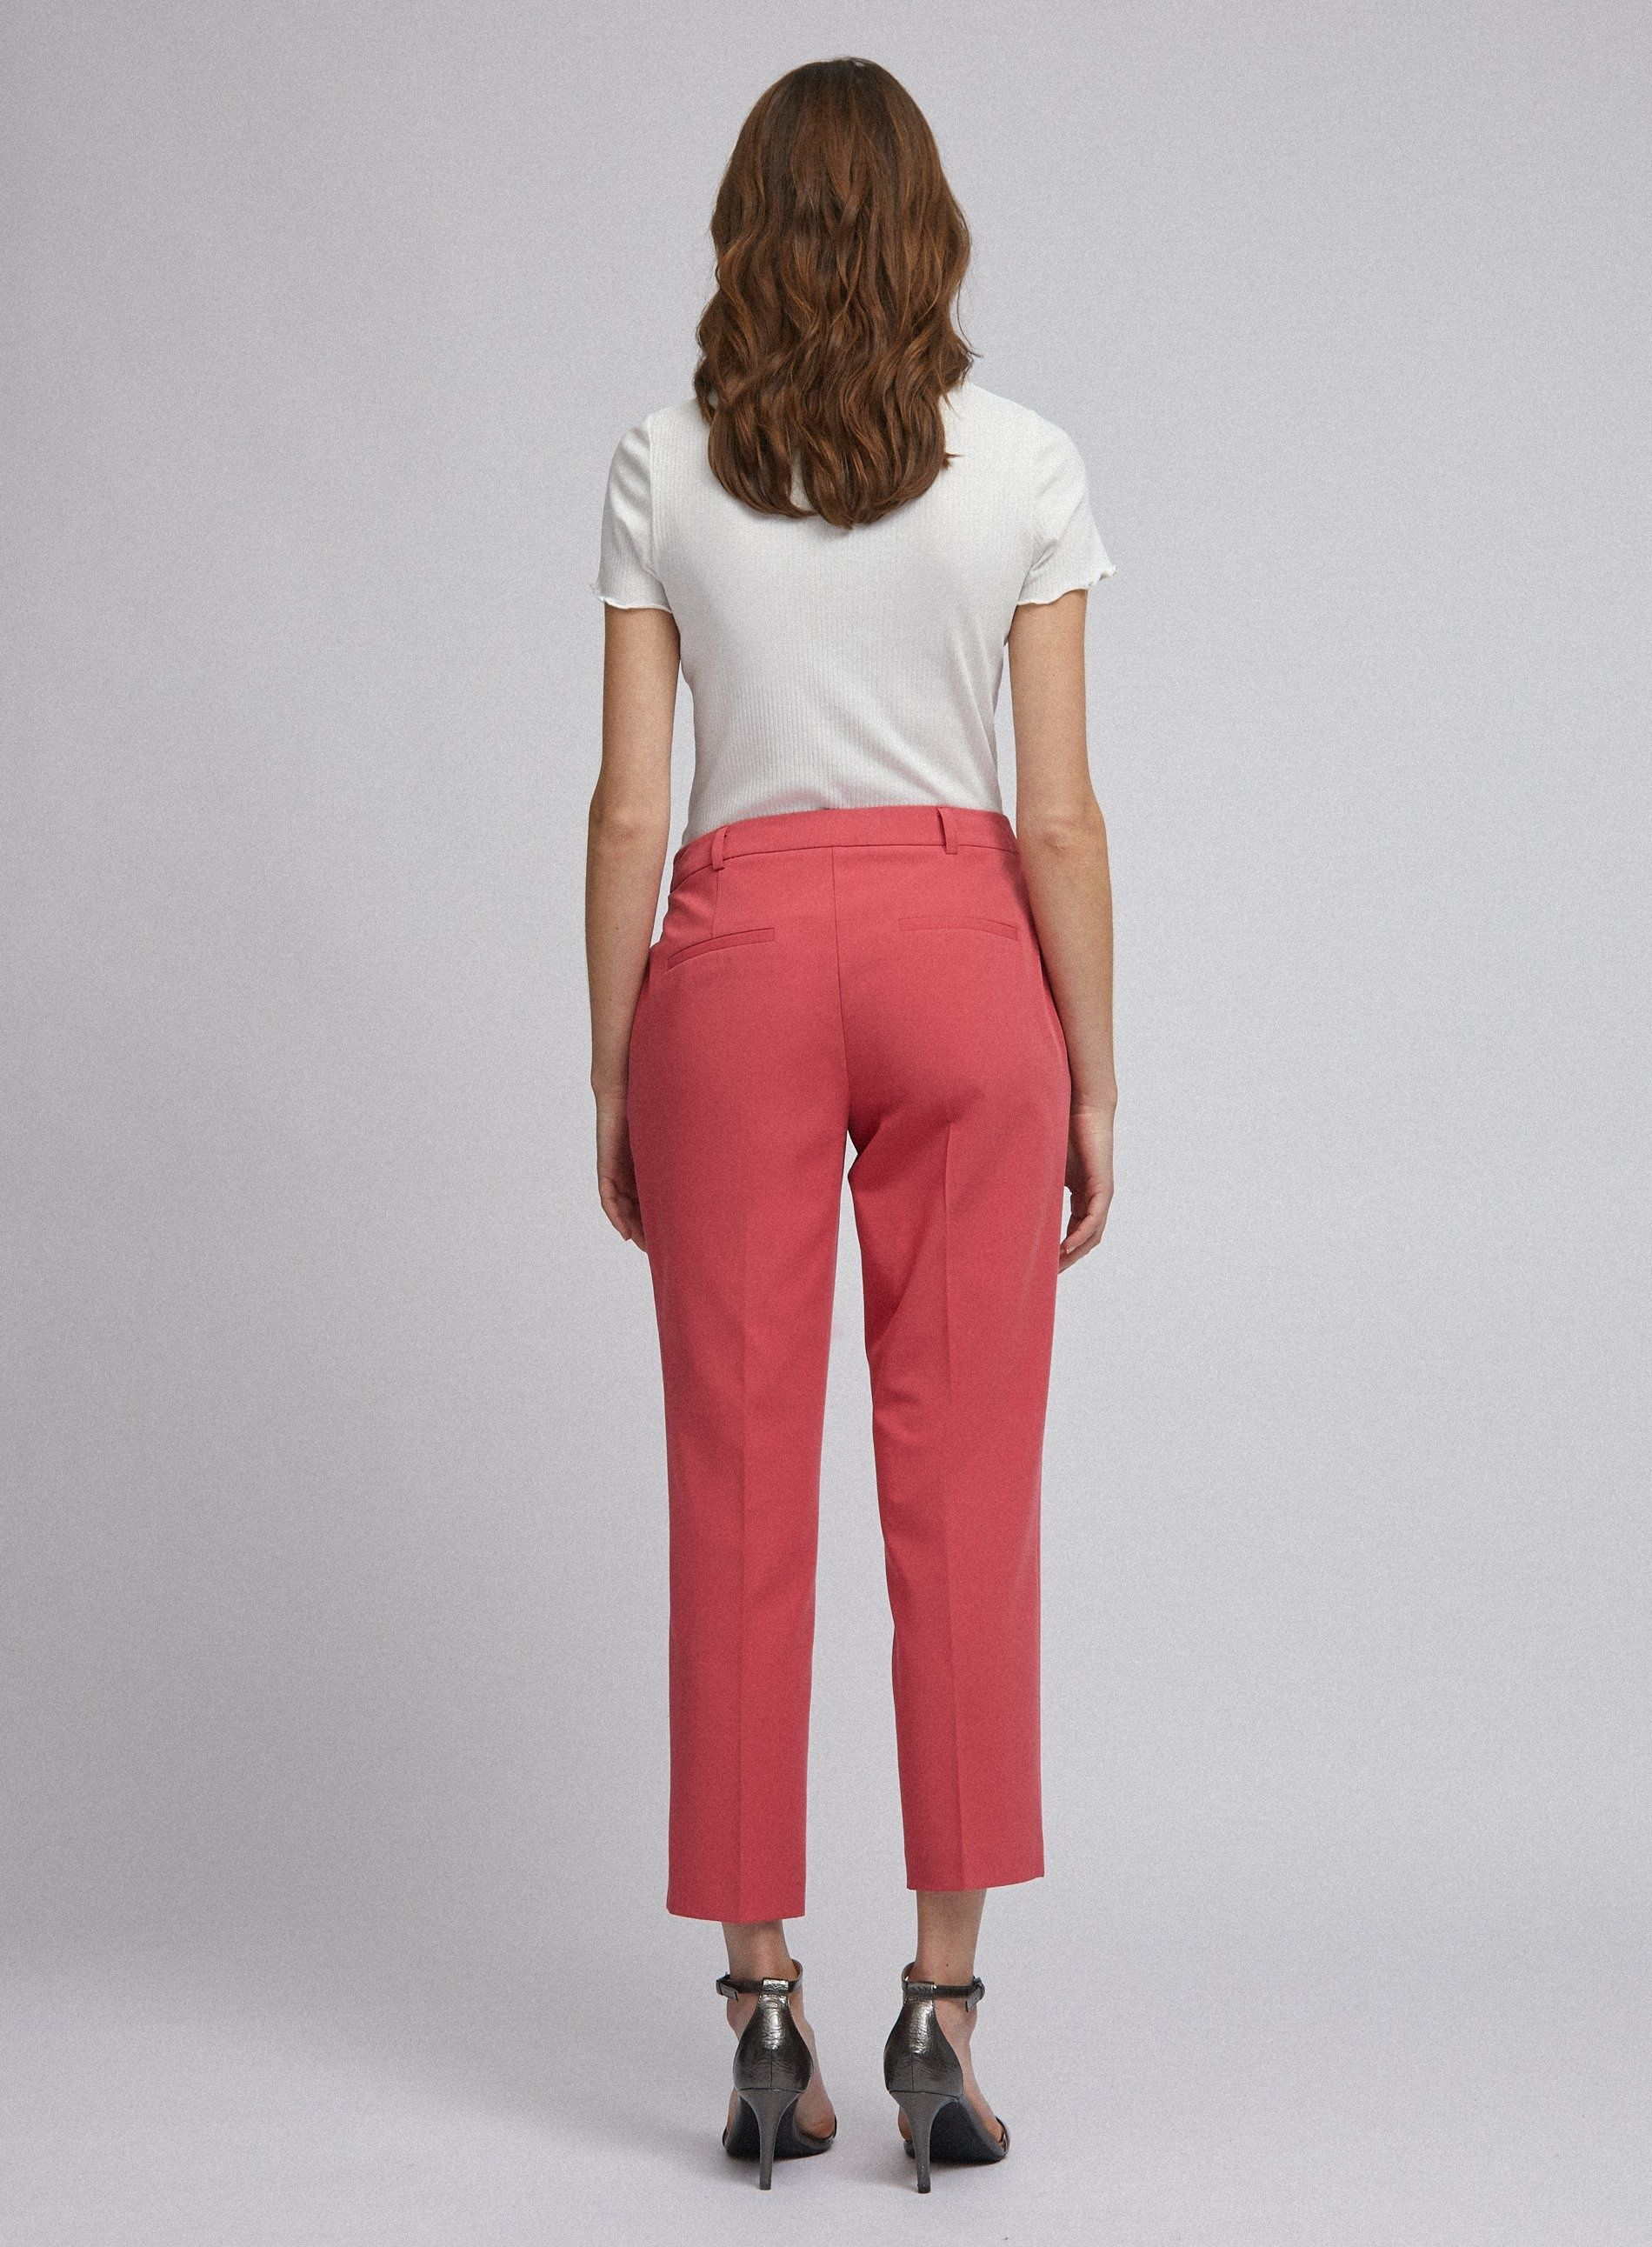 Dorothy Perkins Womens Pink Ankle Grazer Tailored Trousers Pants Bottoms